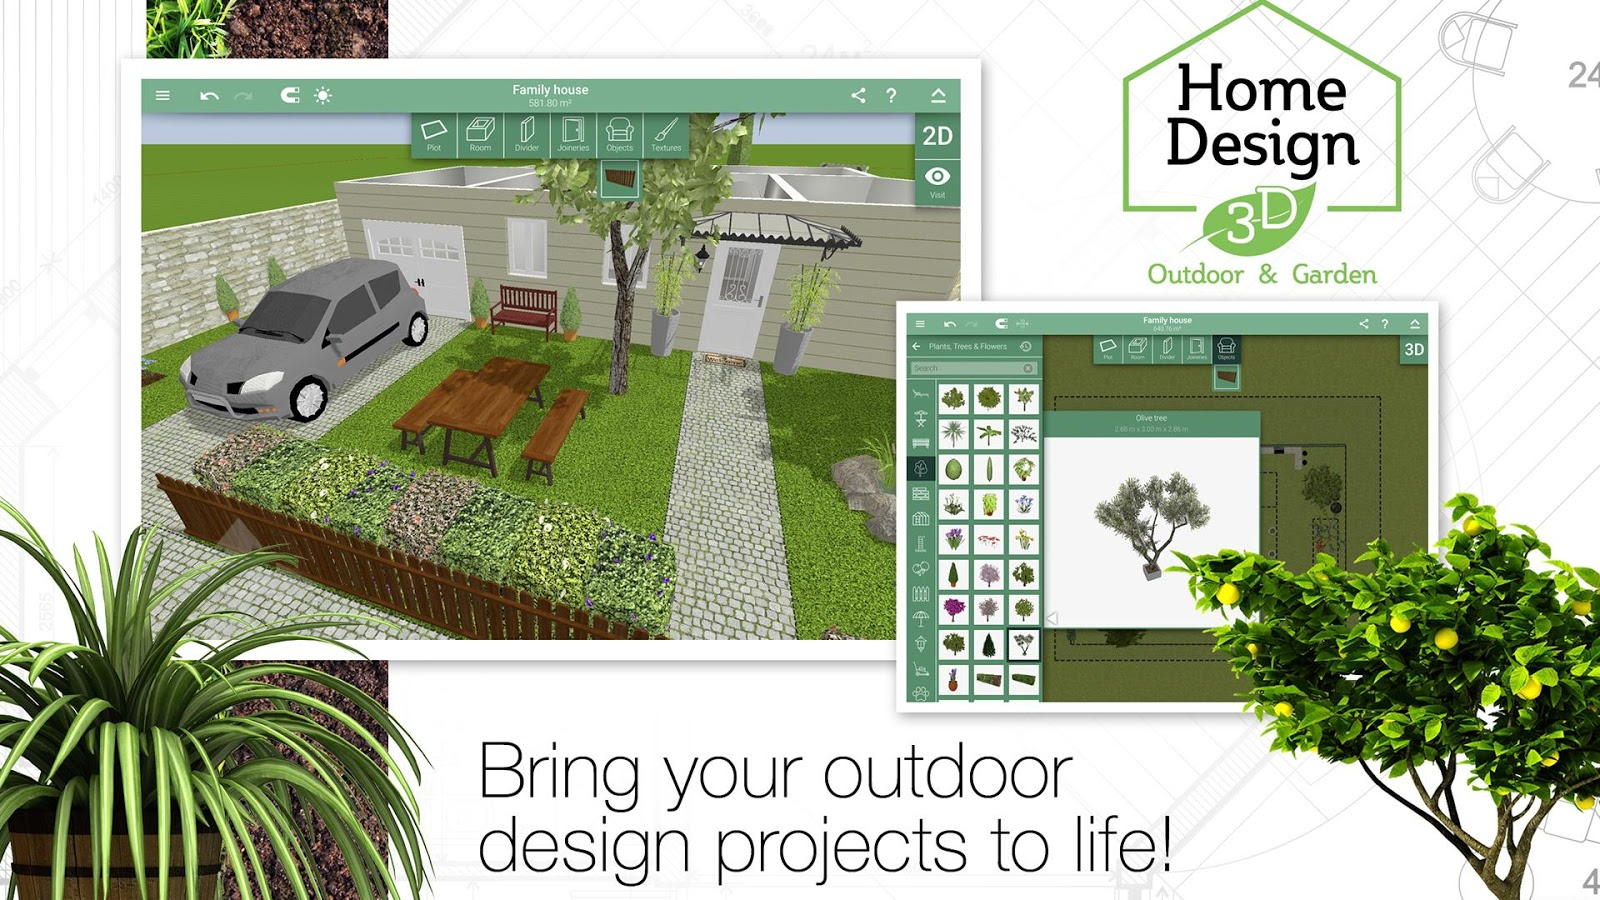 Home design 3d outdoor garden android apps on google play for Home design with garden